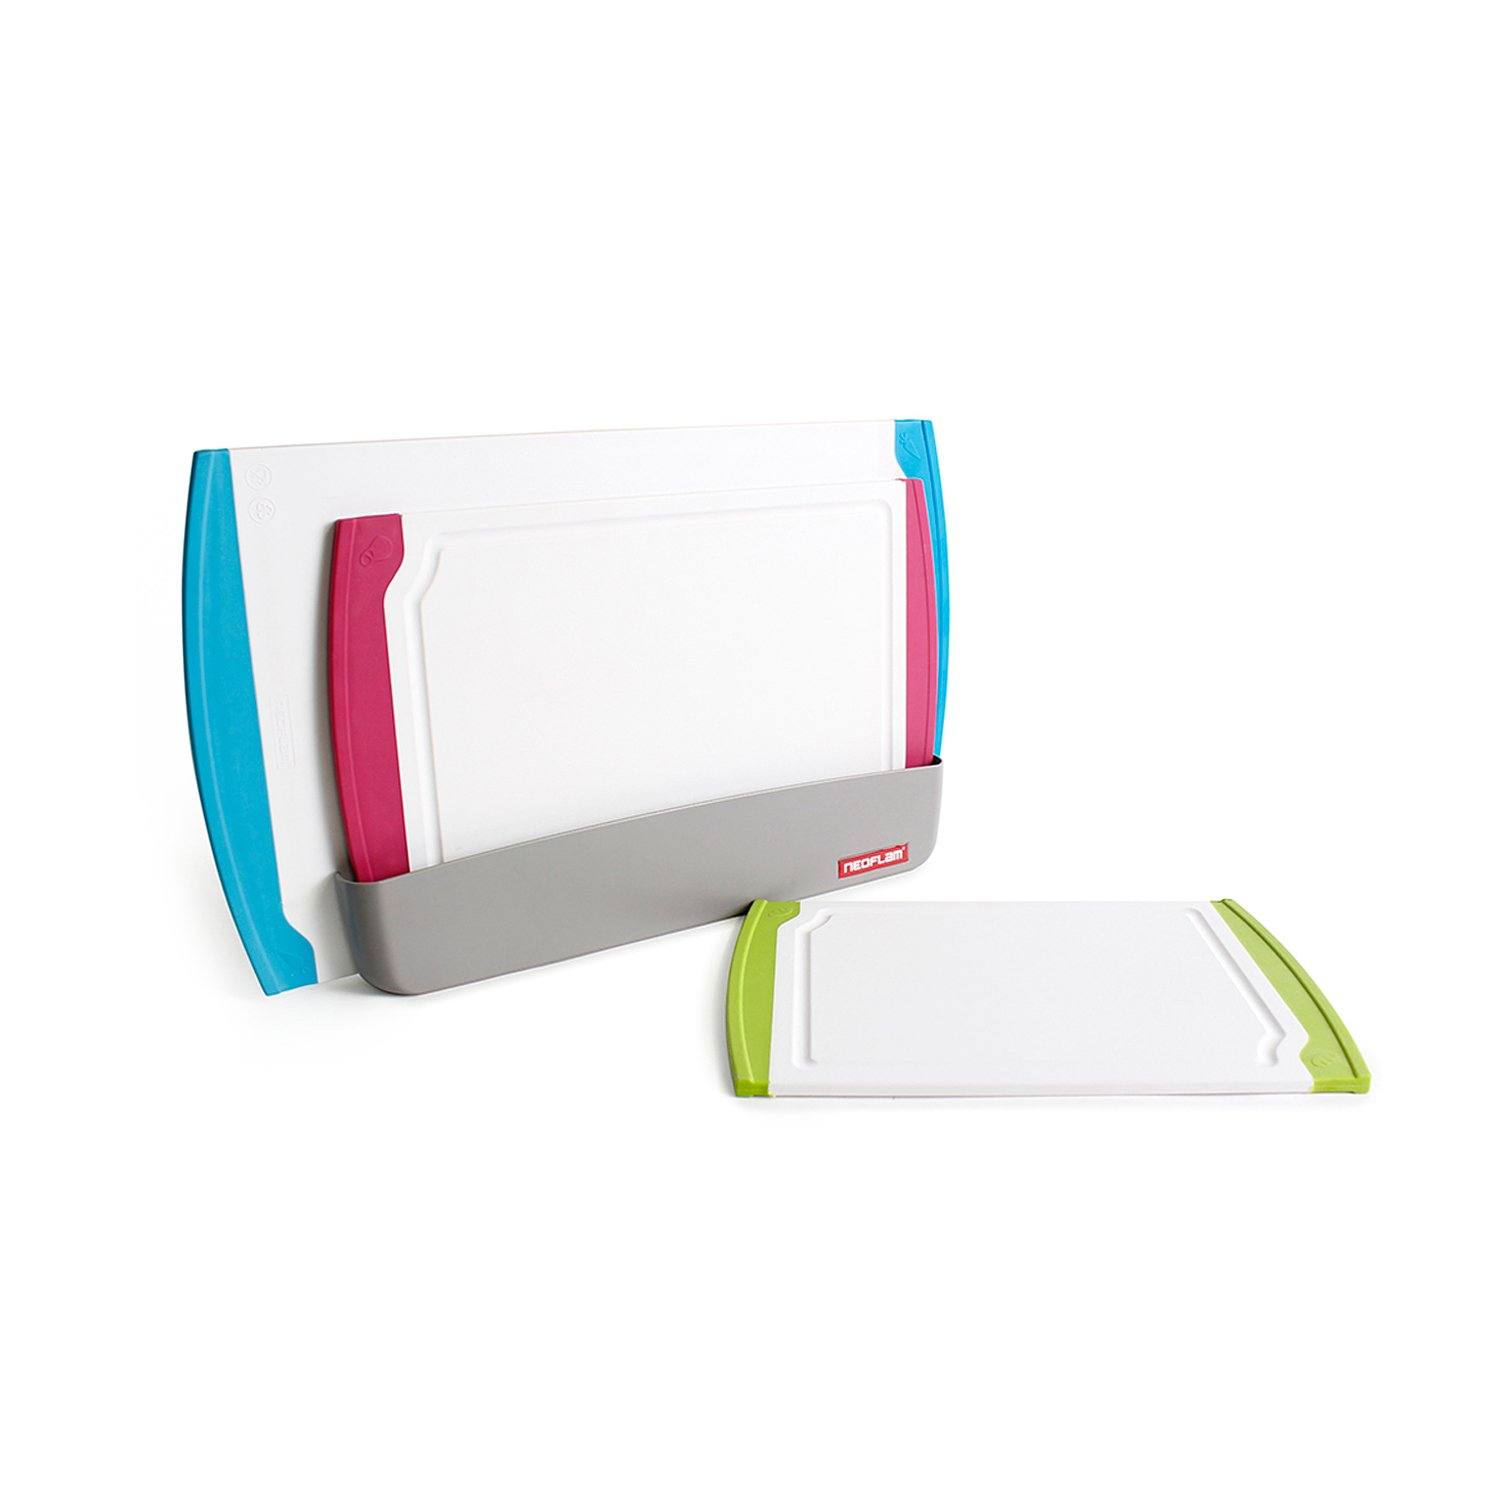 Neoflam 3 Piece Plastic Cutting Board Set plus Organizer in White and Multi - BPA Free, Non Slip, Dishwasher Safe, Microban Antimicrobial Protection